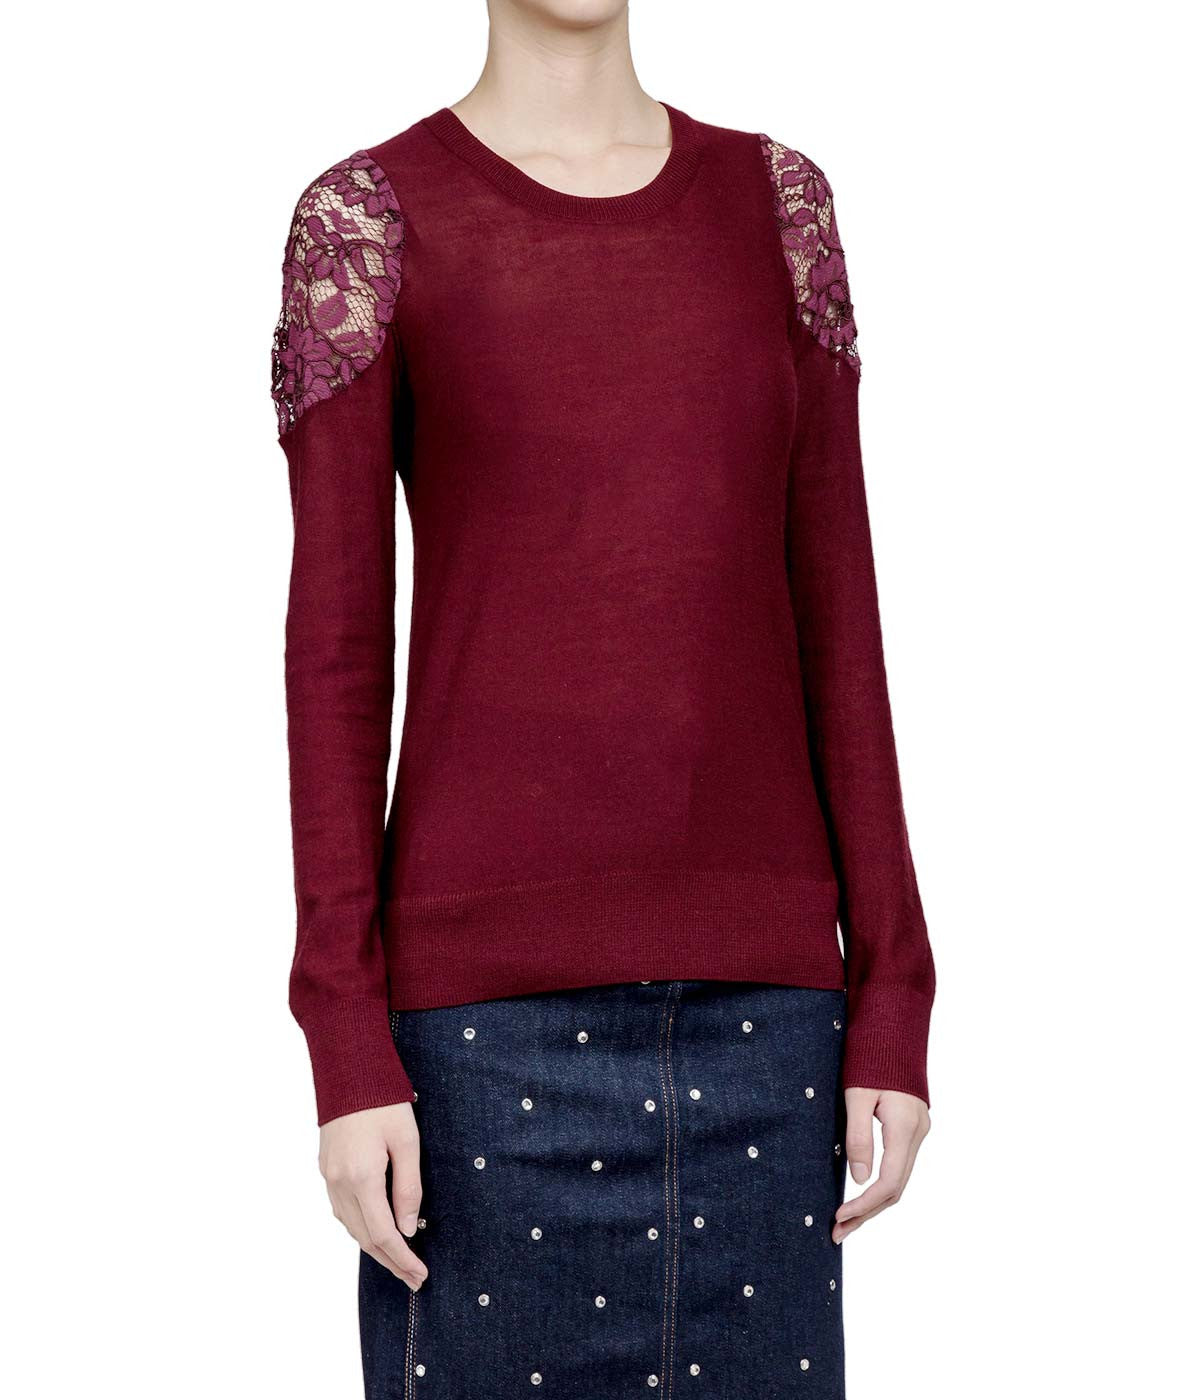 Burgundy Lace Panelled Sweater